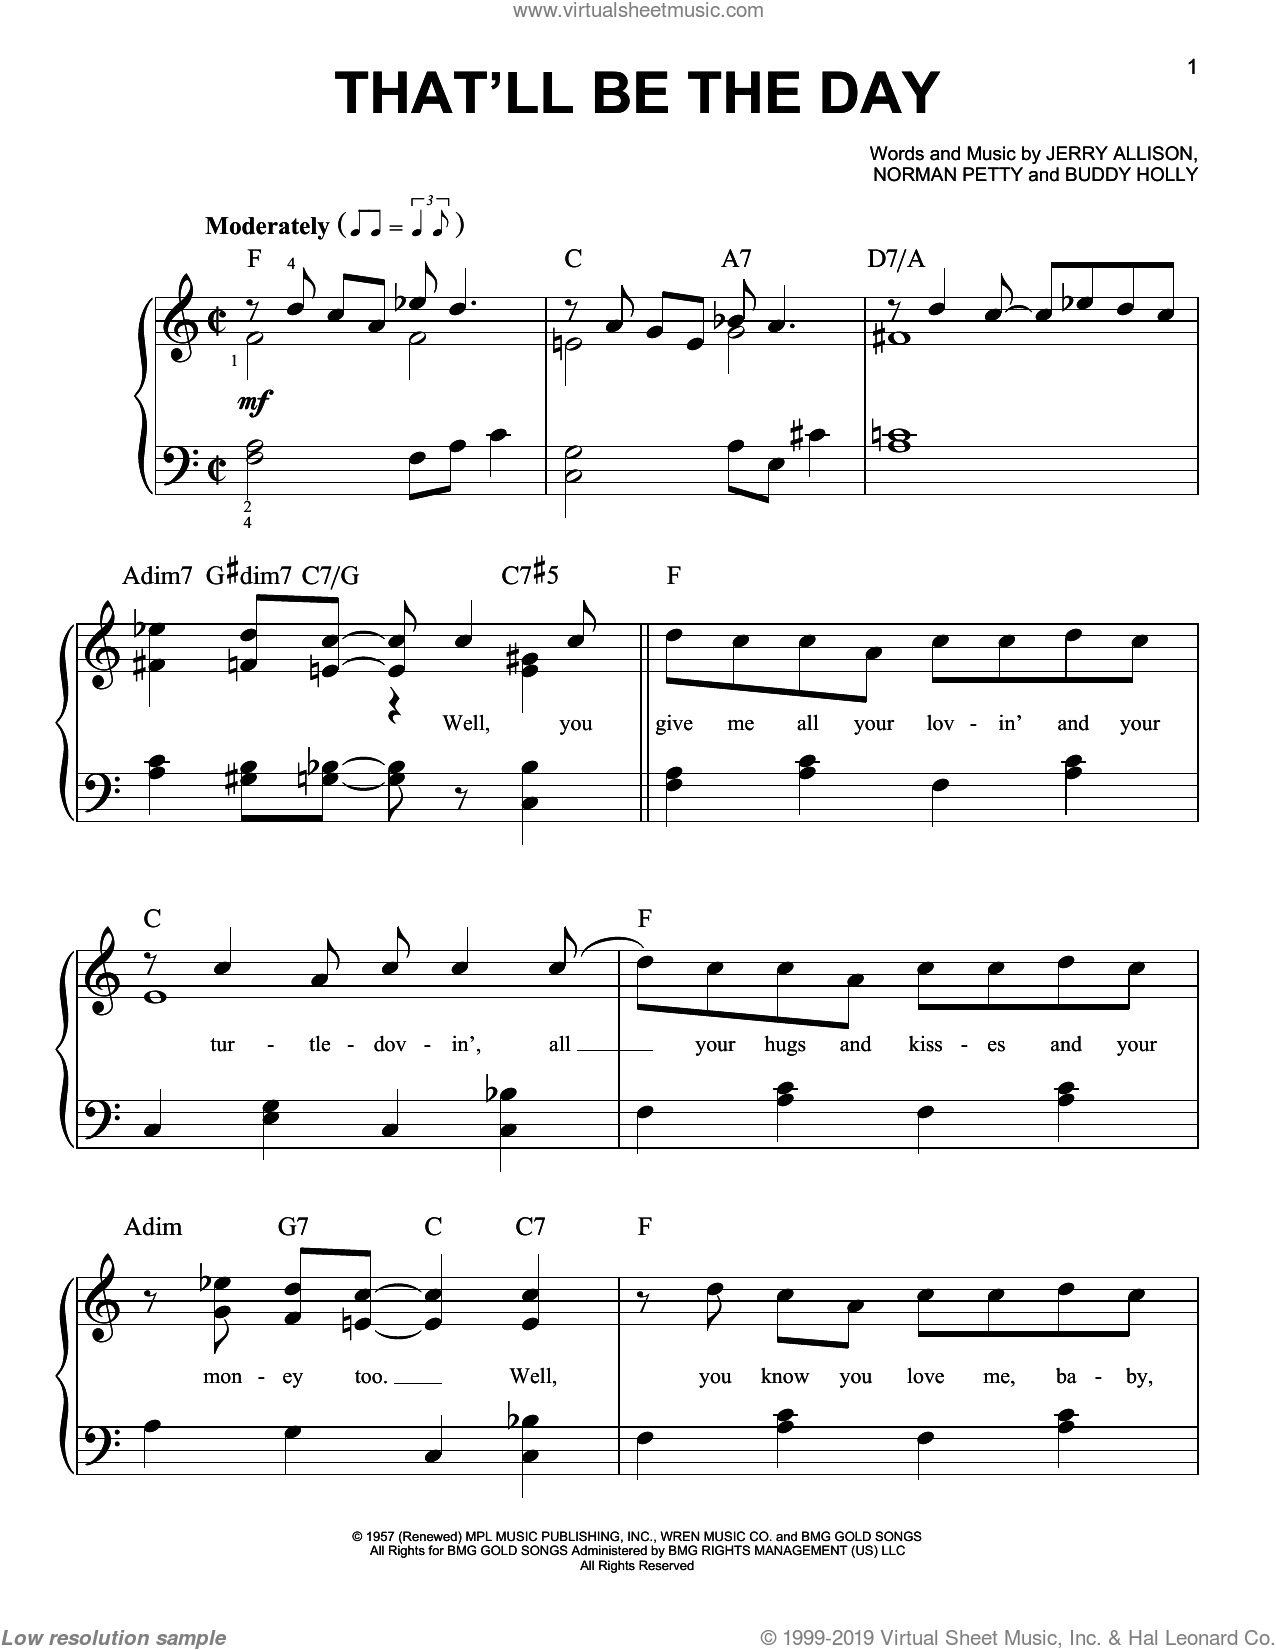 That'll Be The Day sheet music for piano solo by Buddy Holly, The Crickets, Jerry Allison and Norman Petty, easy skill level